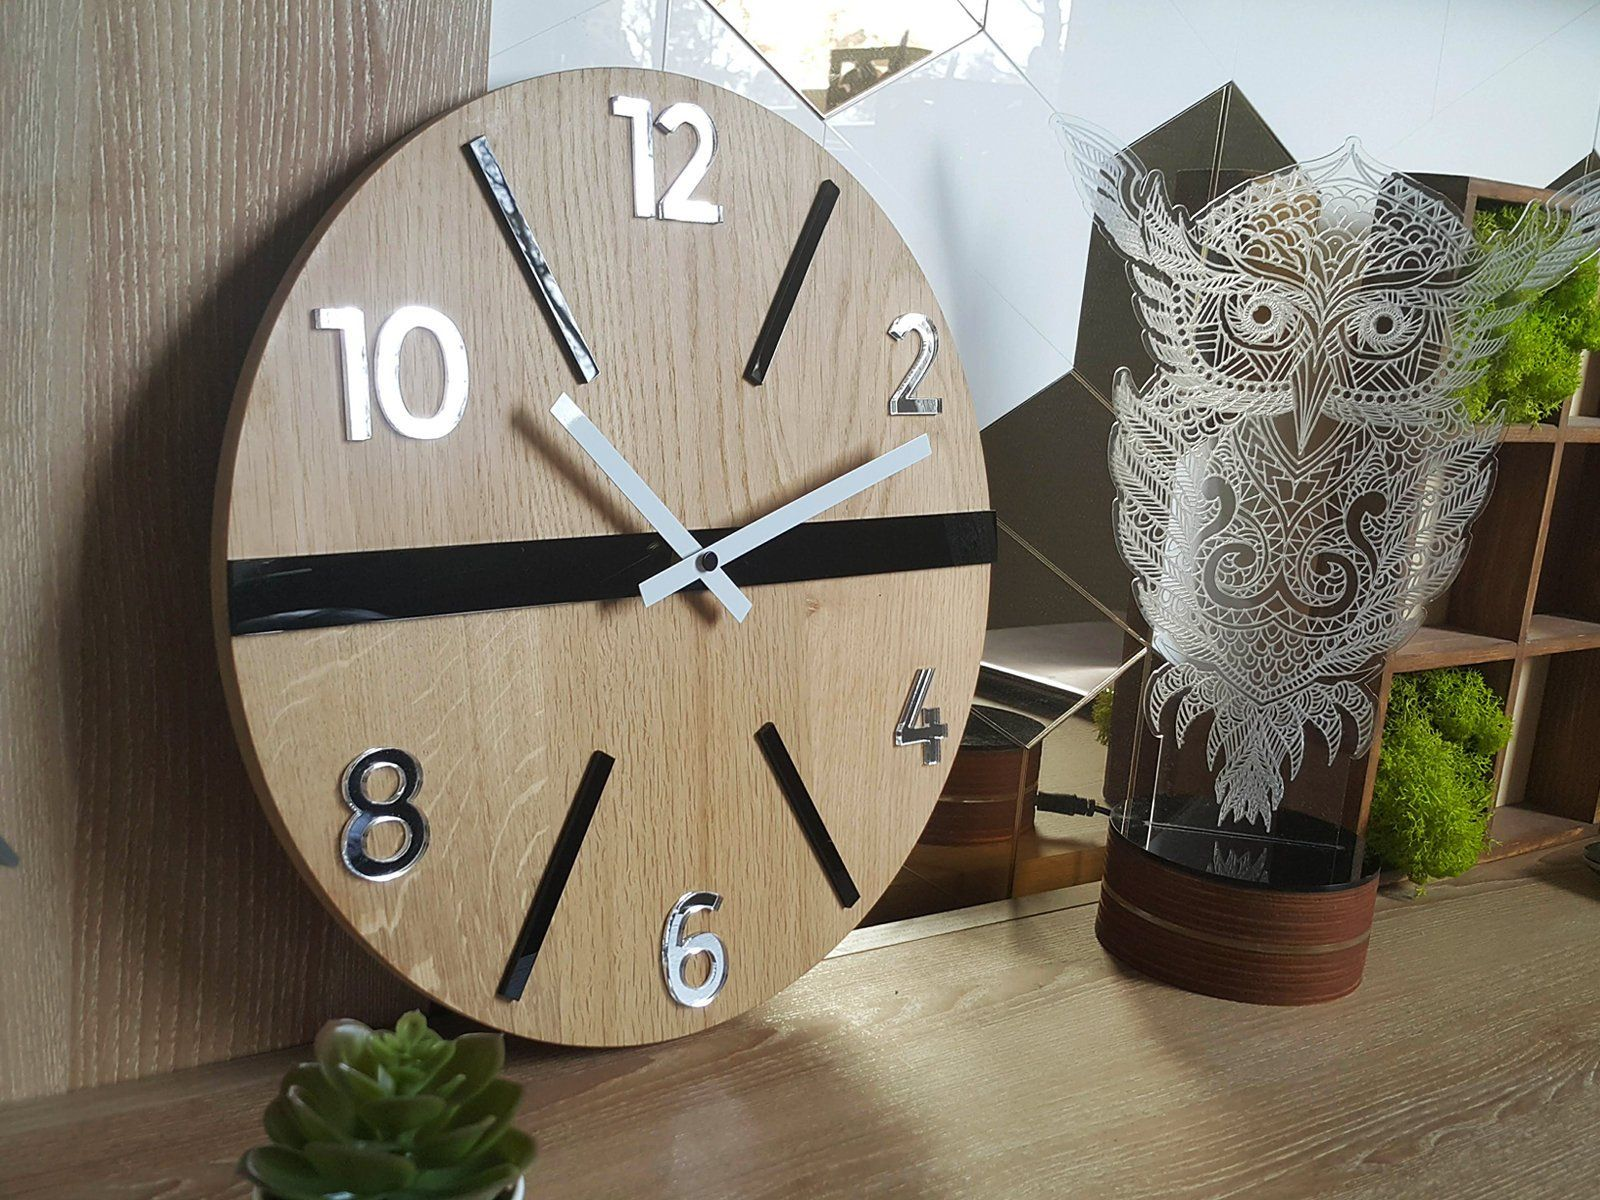 Wall Clock In Scandinavian Style White Black And Mirror Etsy Colorful Wall Clocks Scandinavian Style Wall Clock